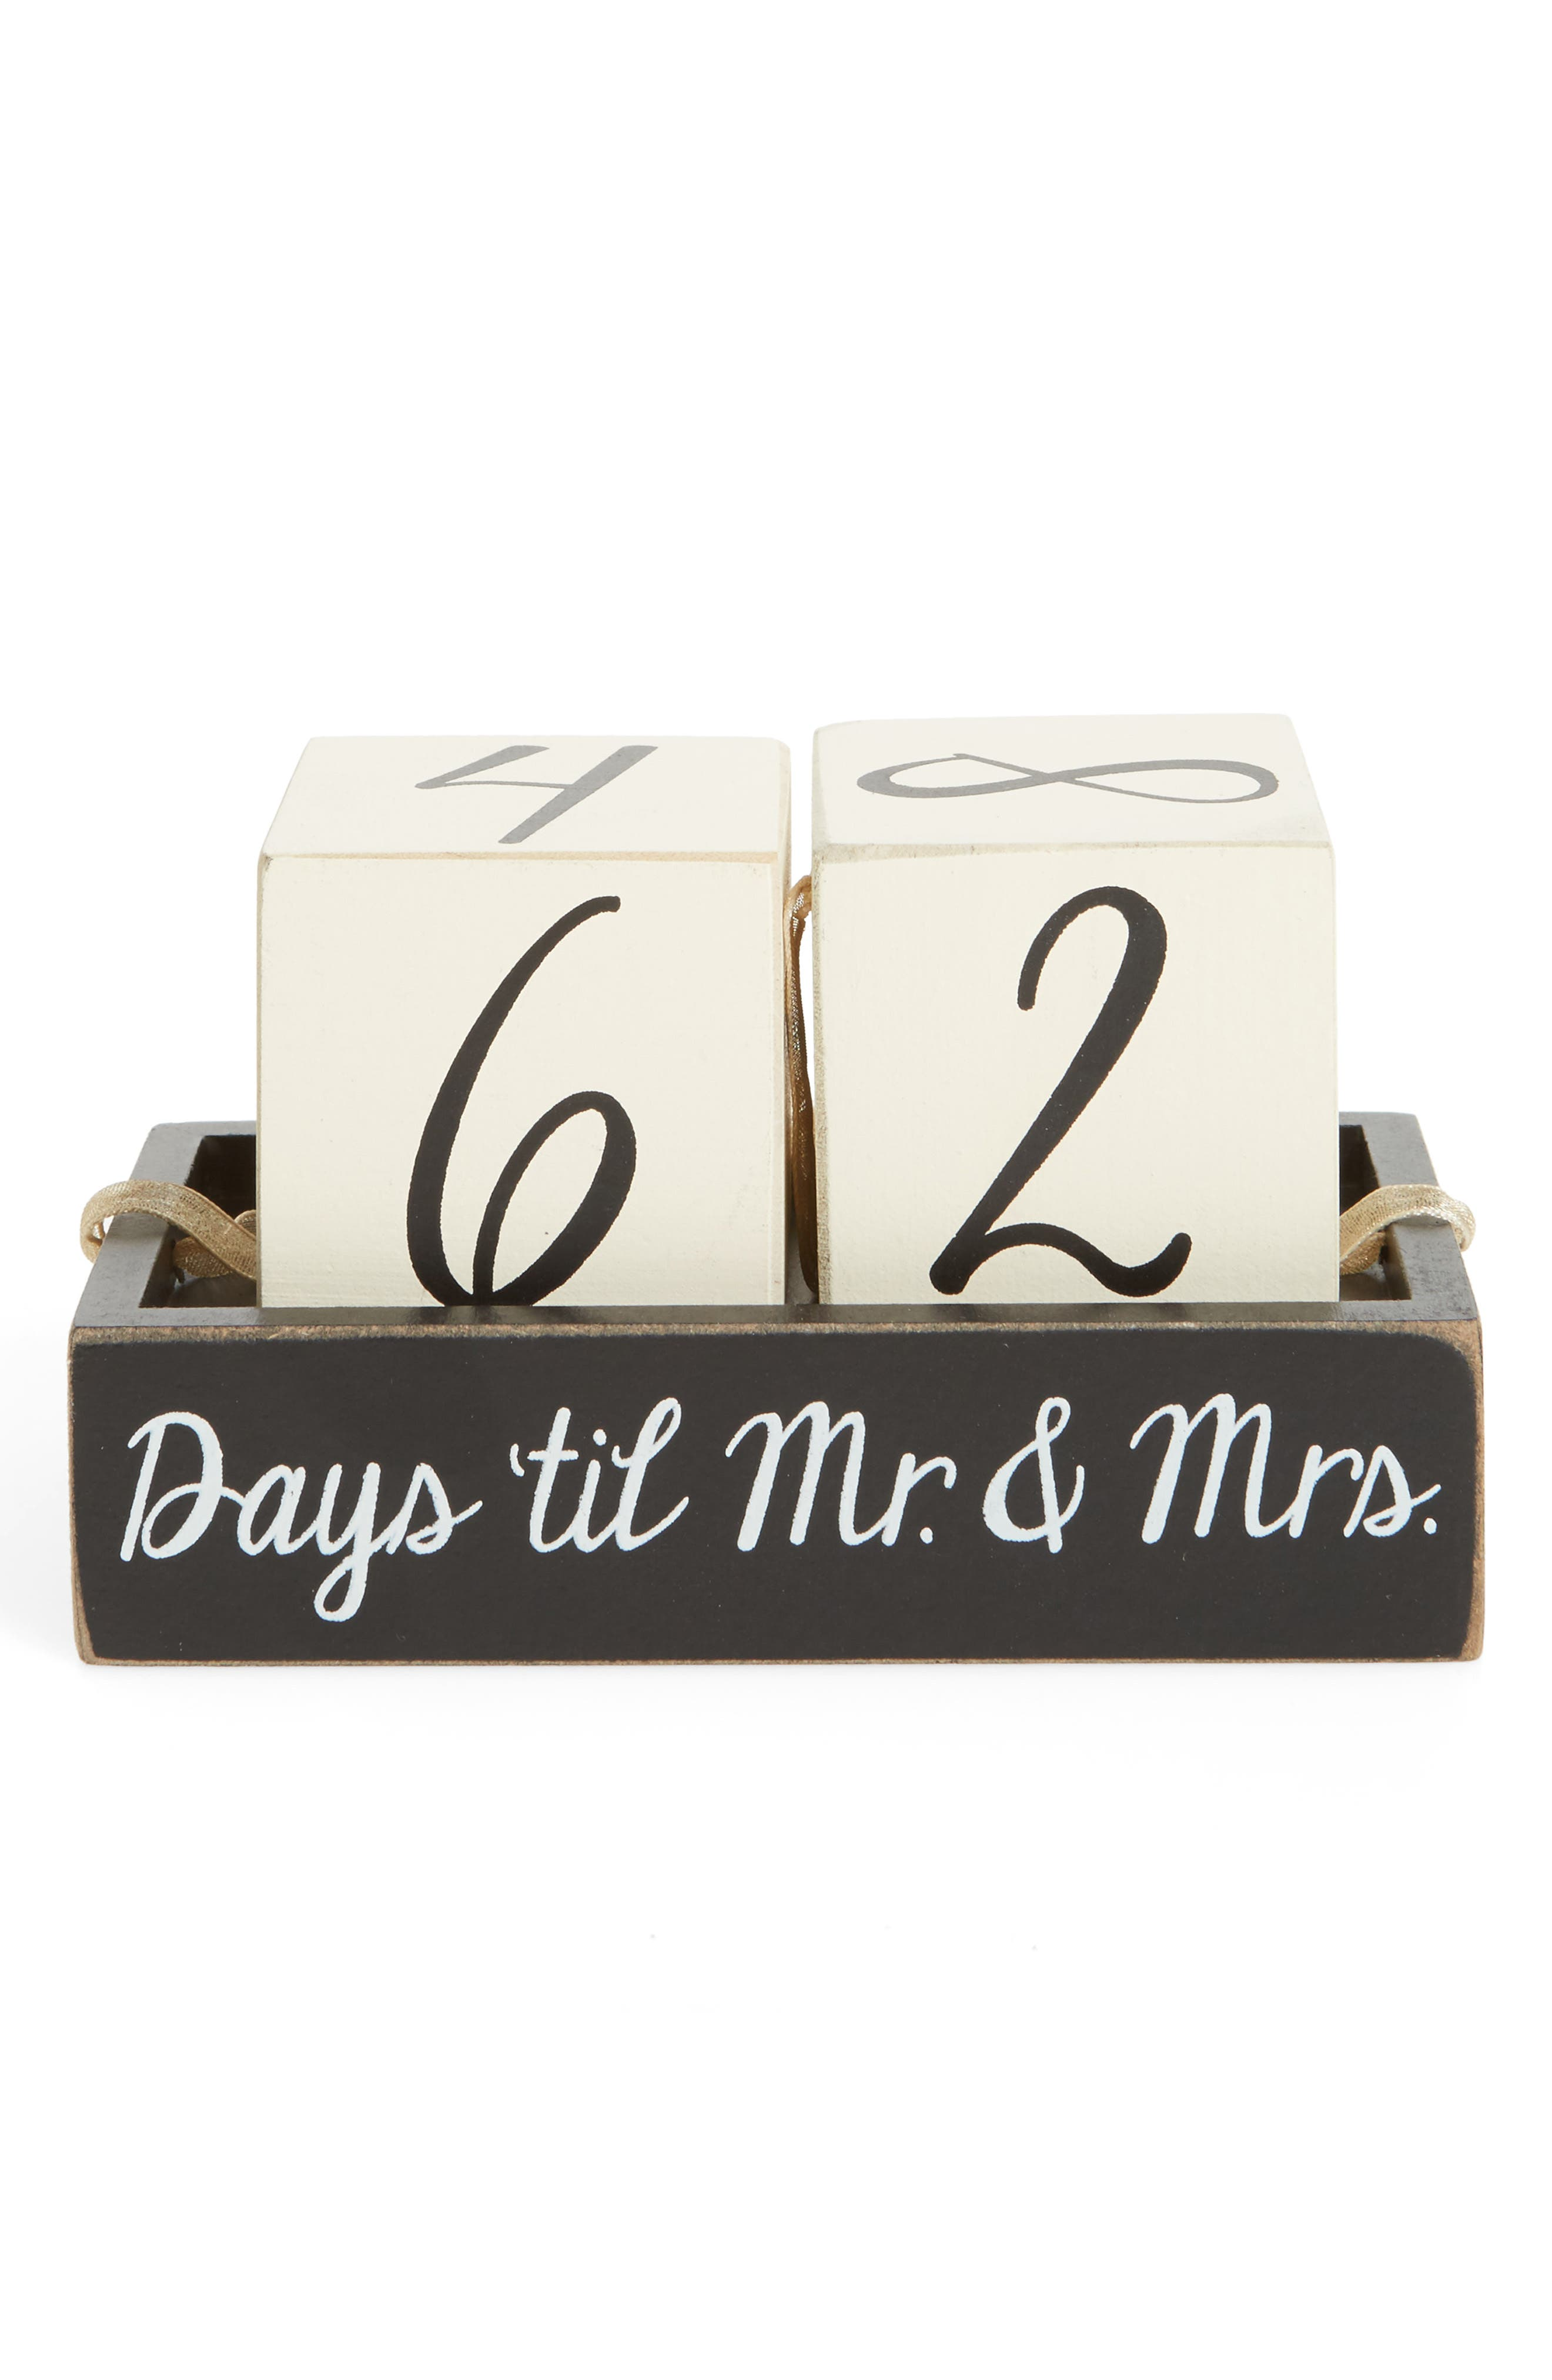 Primitives by Kathy Days 'Til Mr. & Mrs. Countdown Cubes